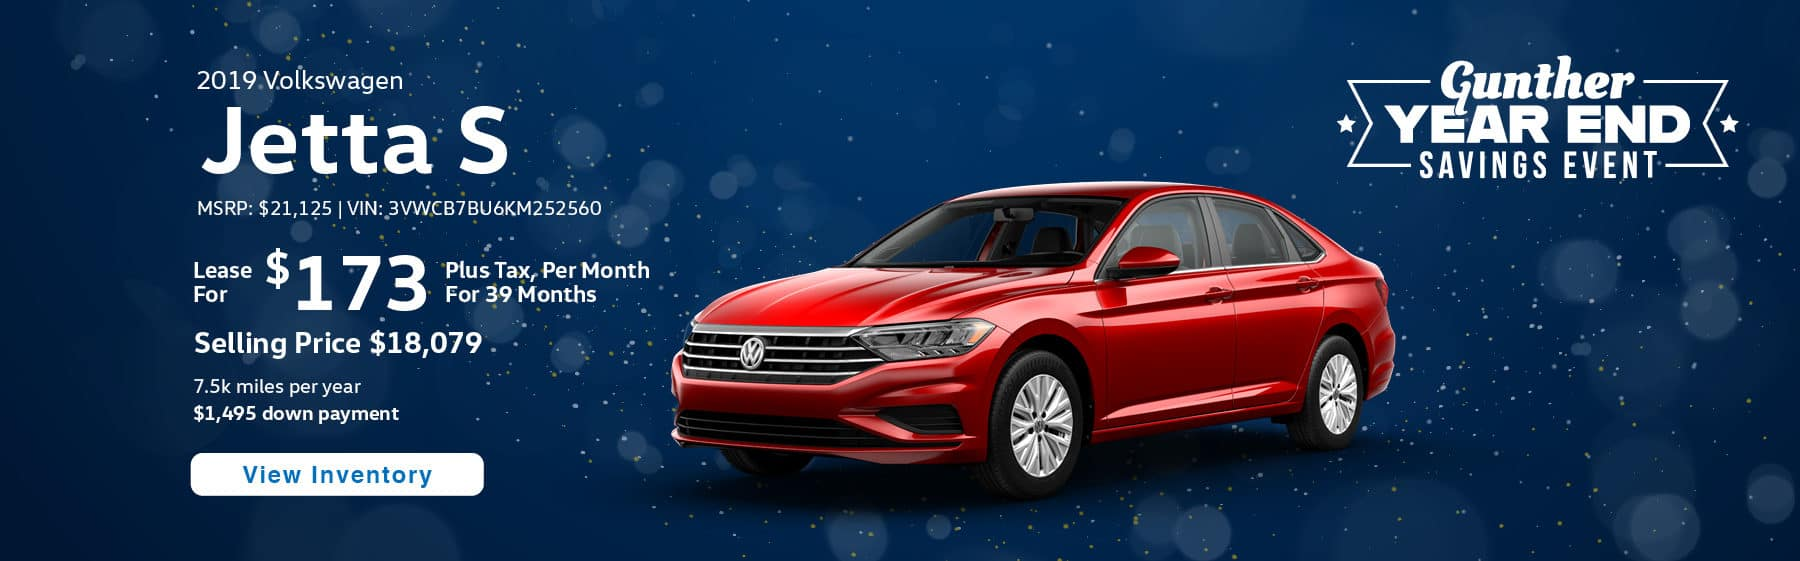 Lease the 2019 Jetta S for $173 per month, plus tax for 39 months.